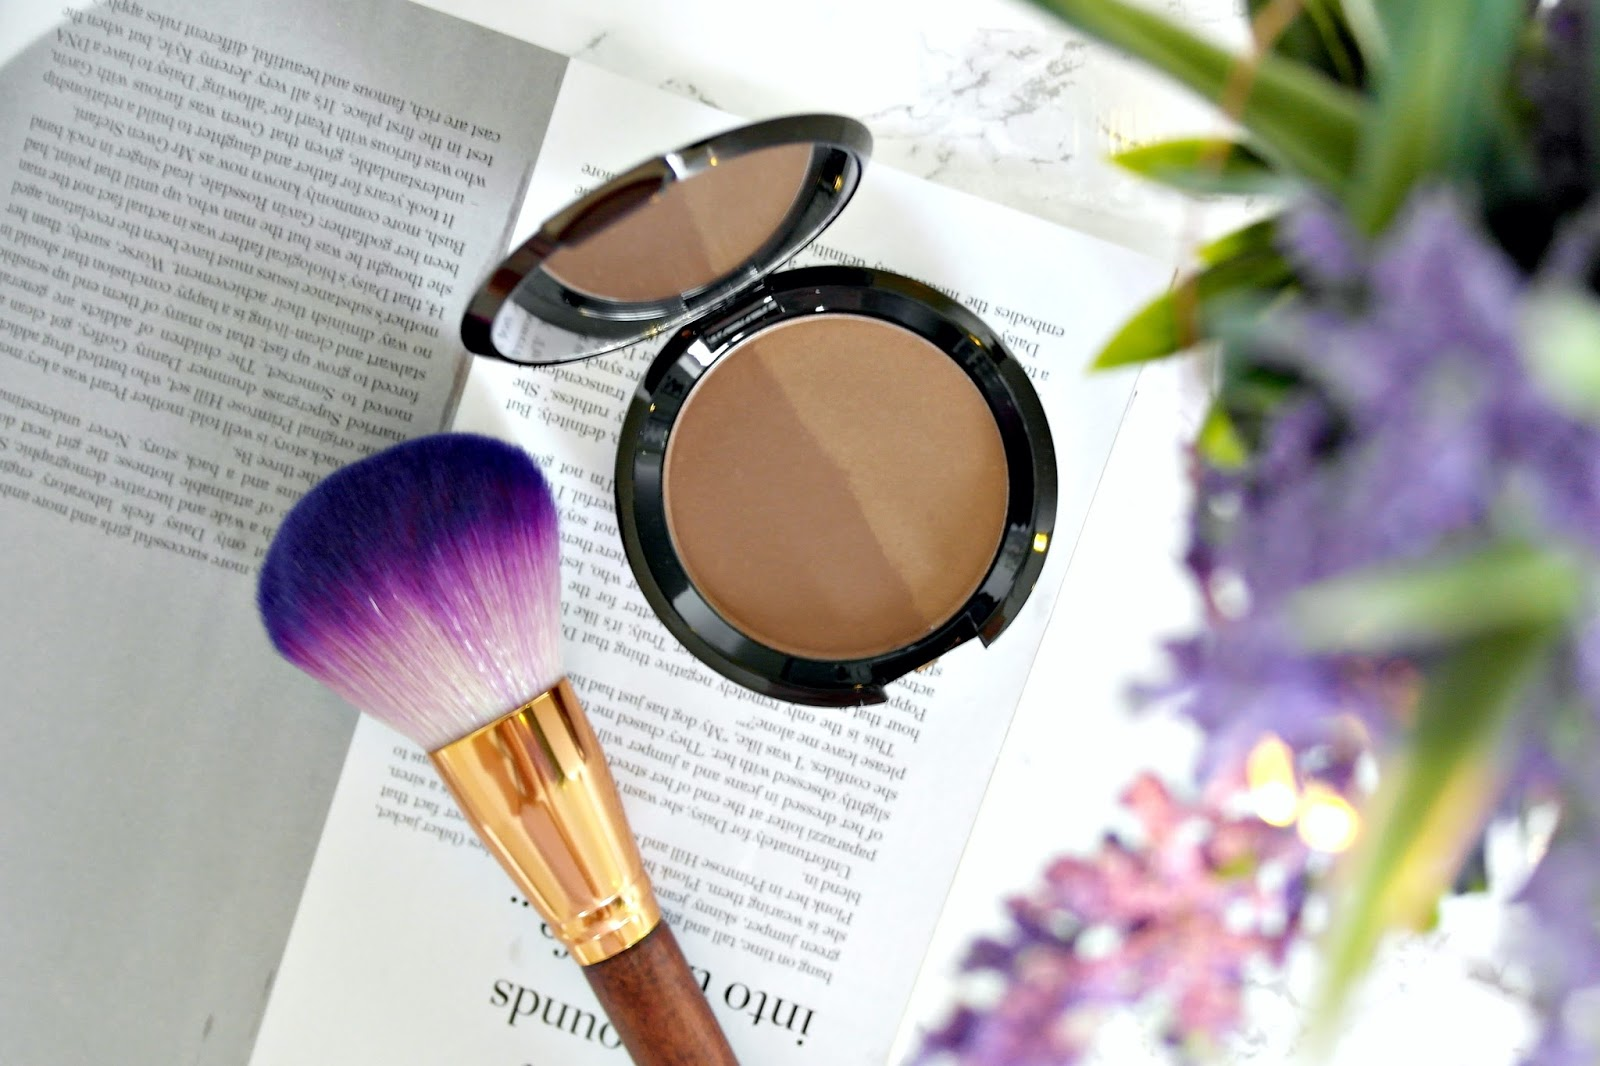 Becca Shadow & Light Contour Perfector